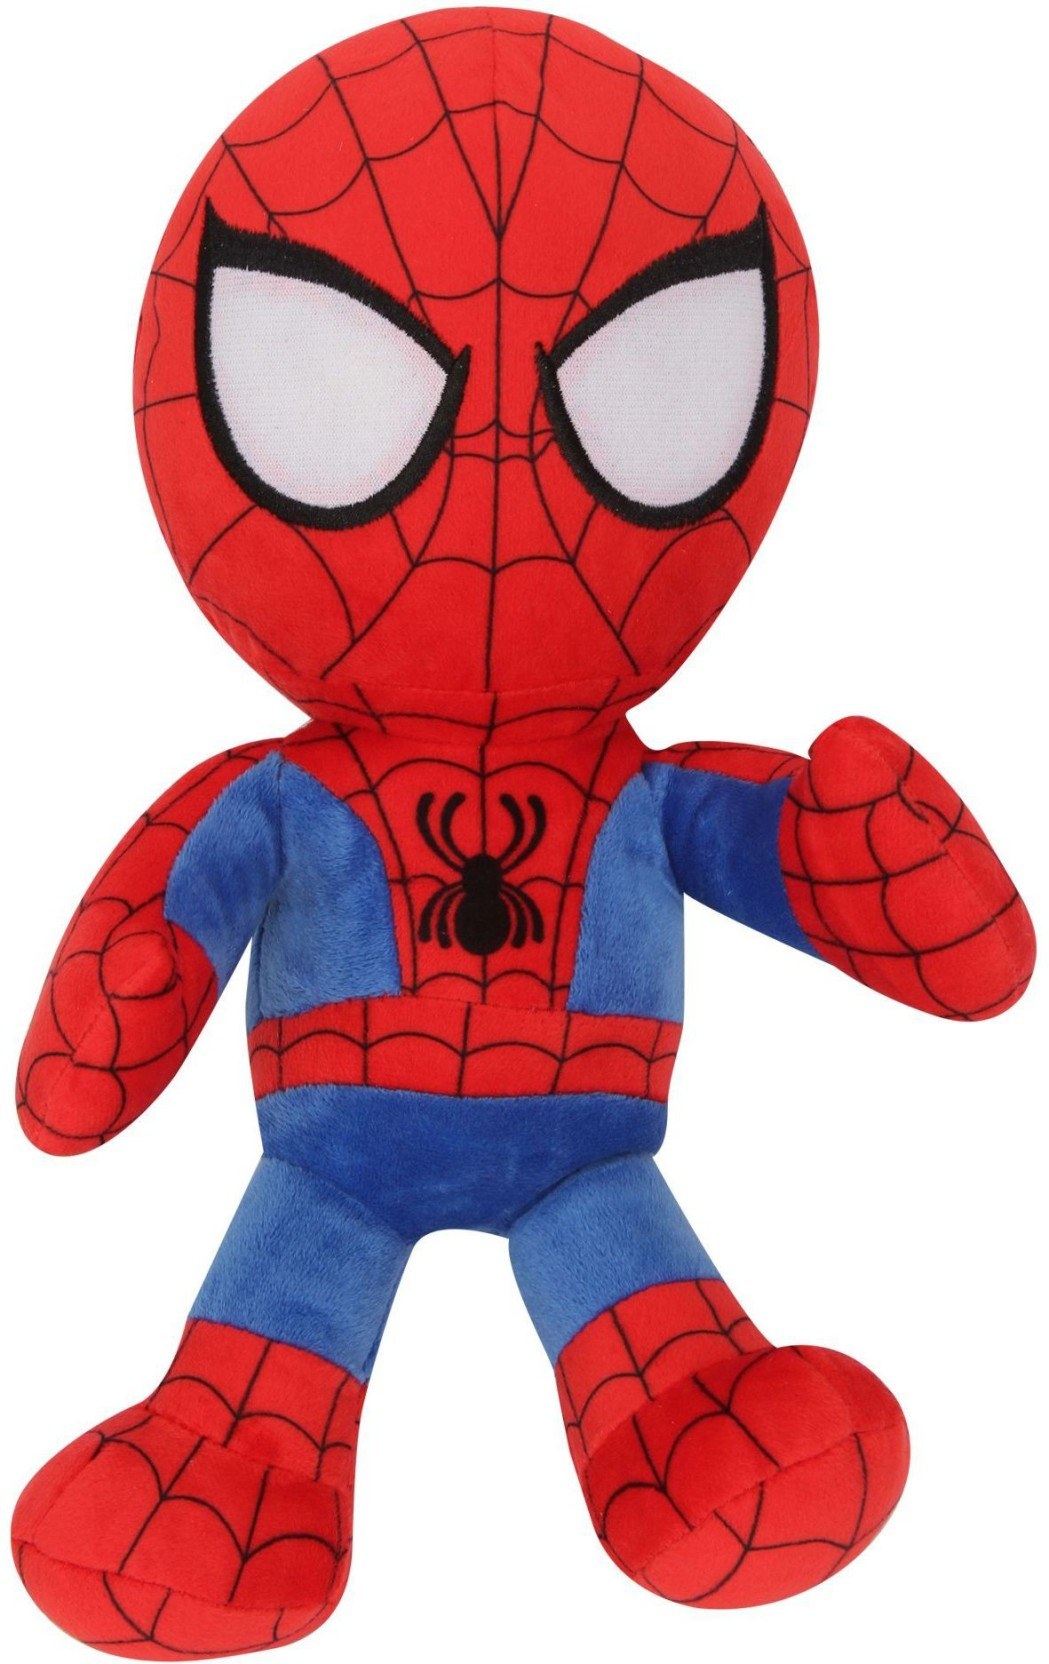 Spiderman Toys For Kids : Marvel spiderman inch plush toy